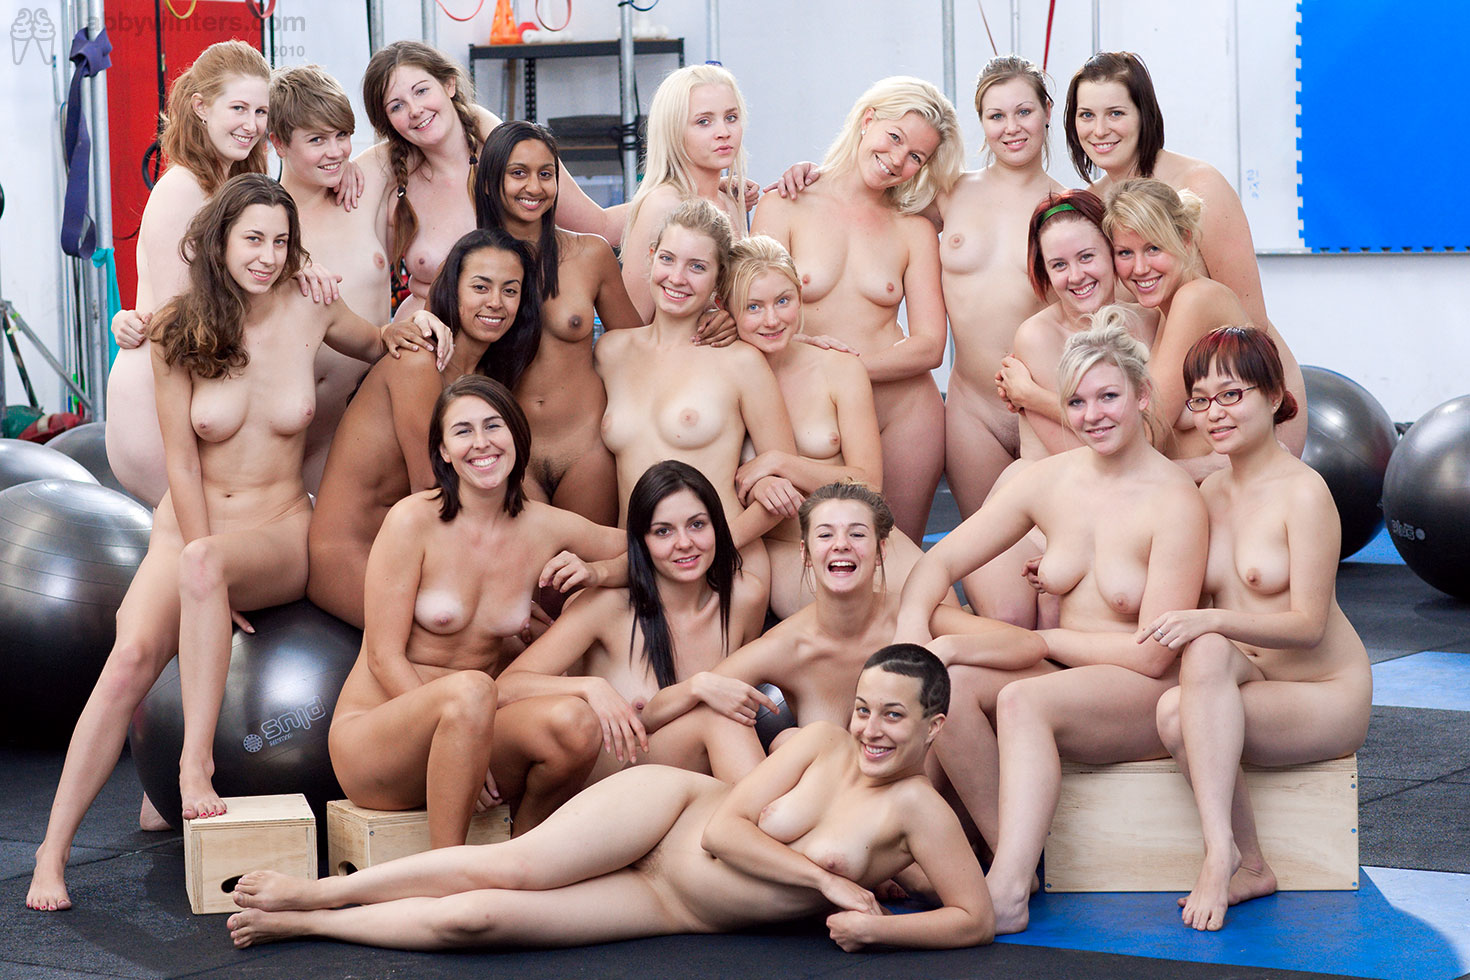 Worcester's saucy women calendar launched in style